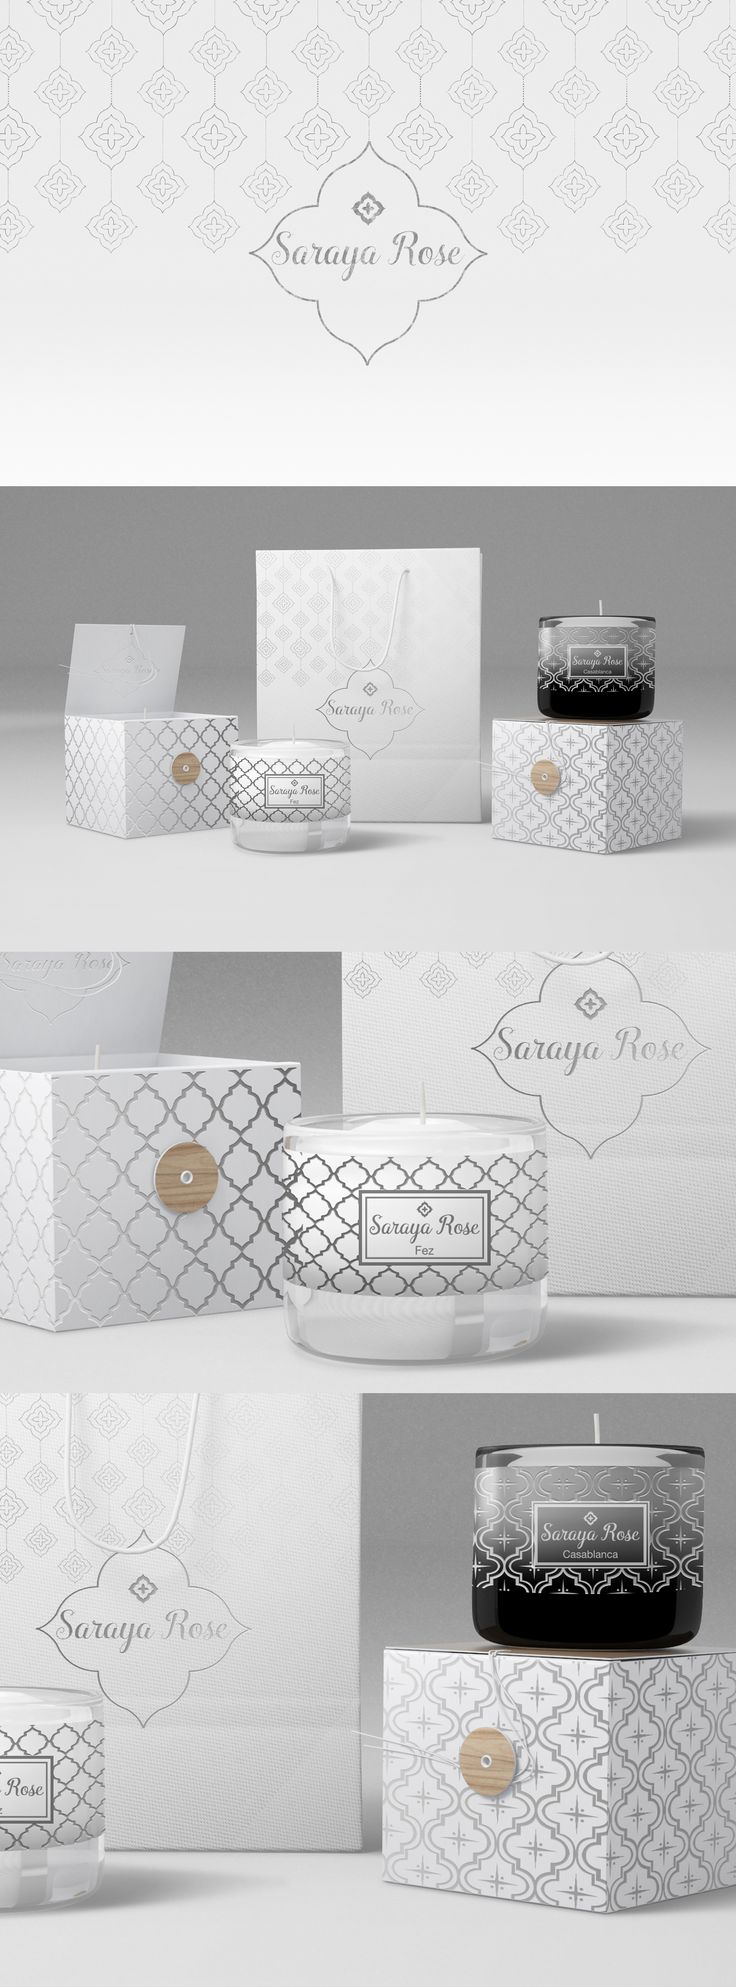 www.One-Giraphe.com #branding #pattern #candle #candles #logo #logodesign http://one-giraphe.com/prev.php?c=187